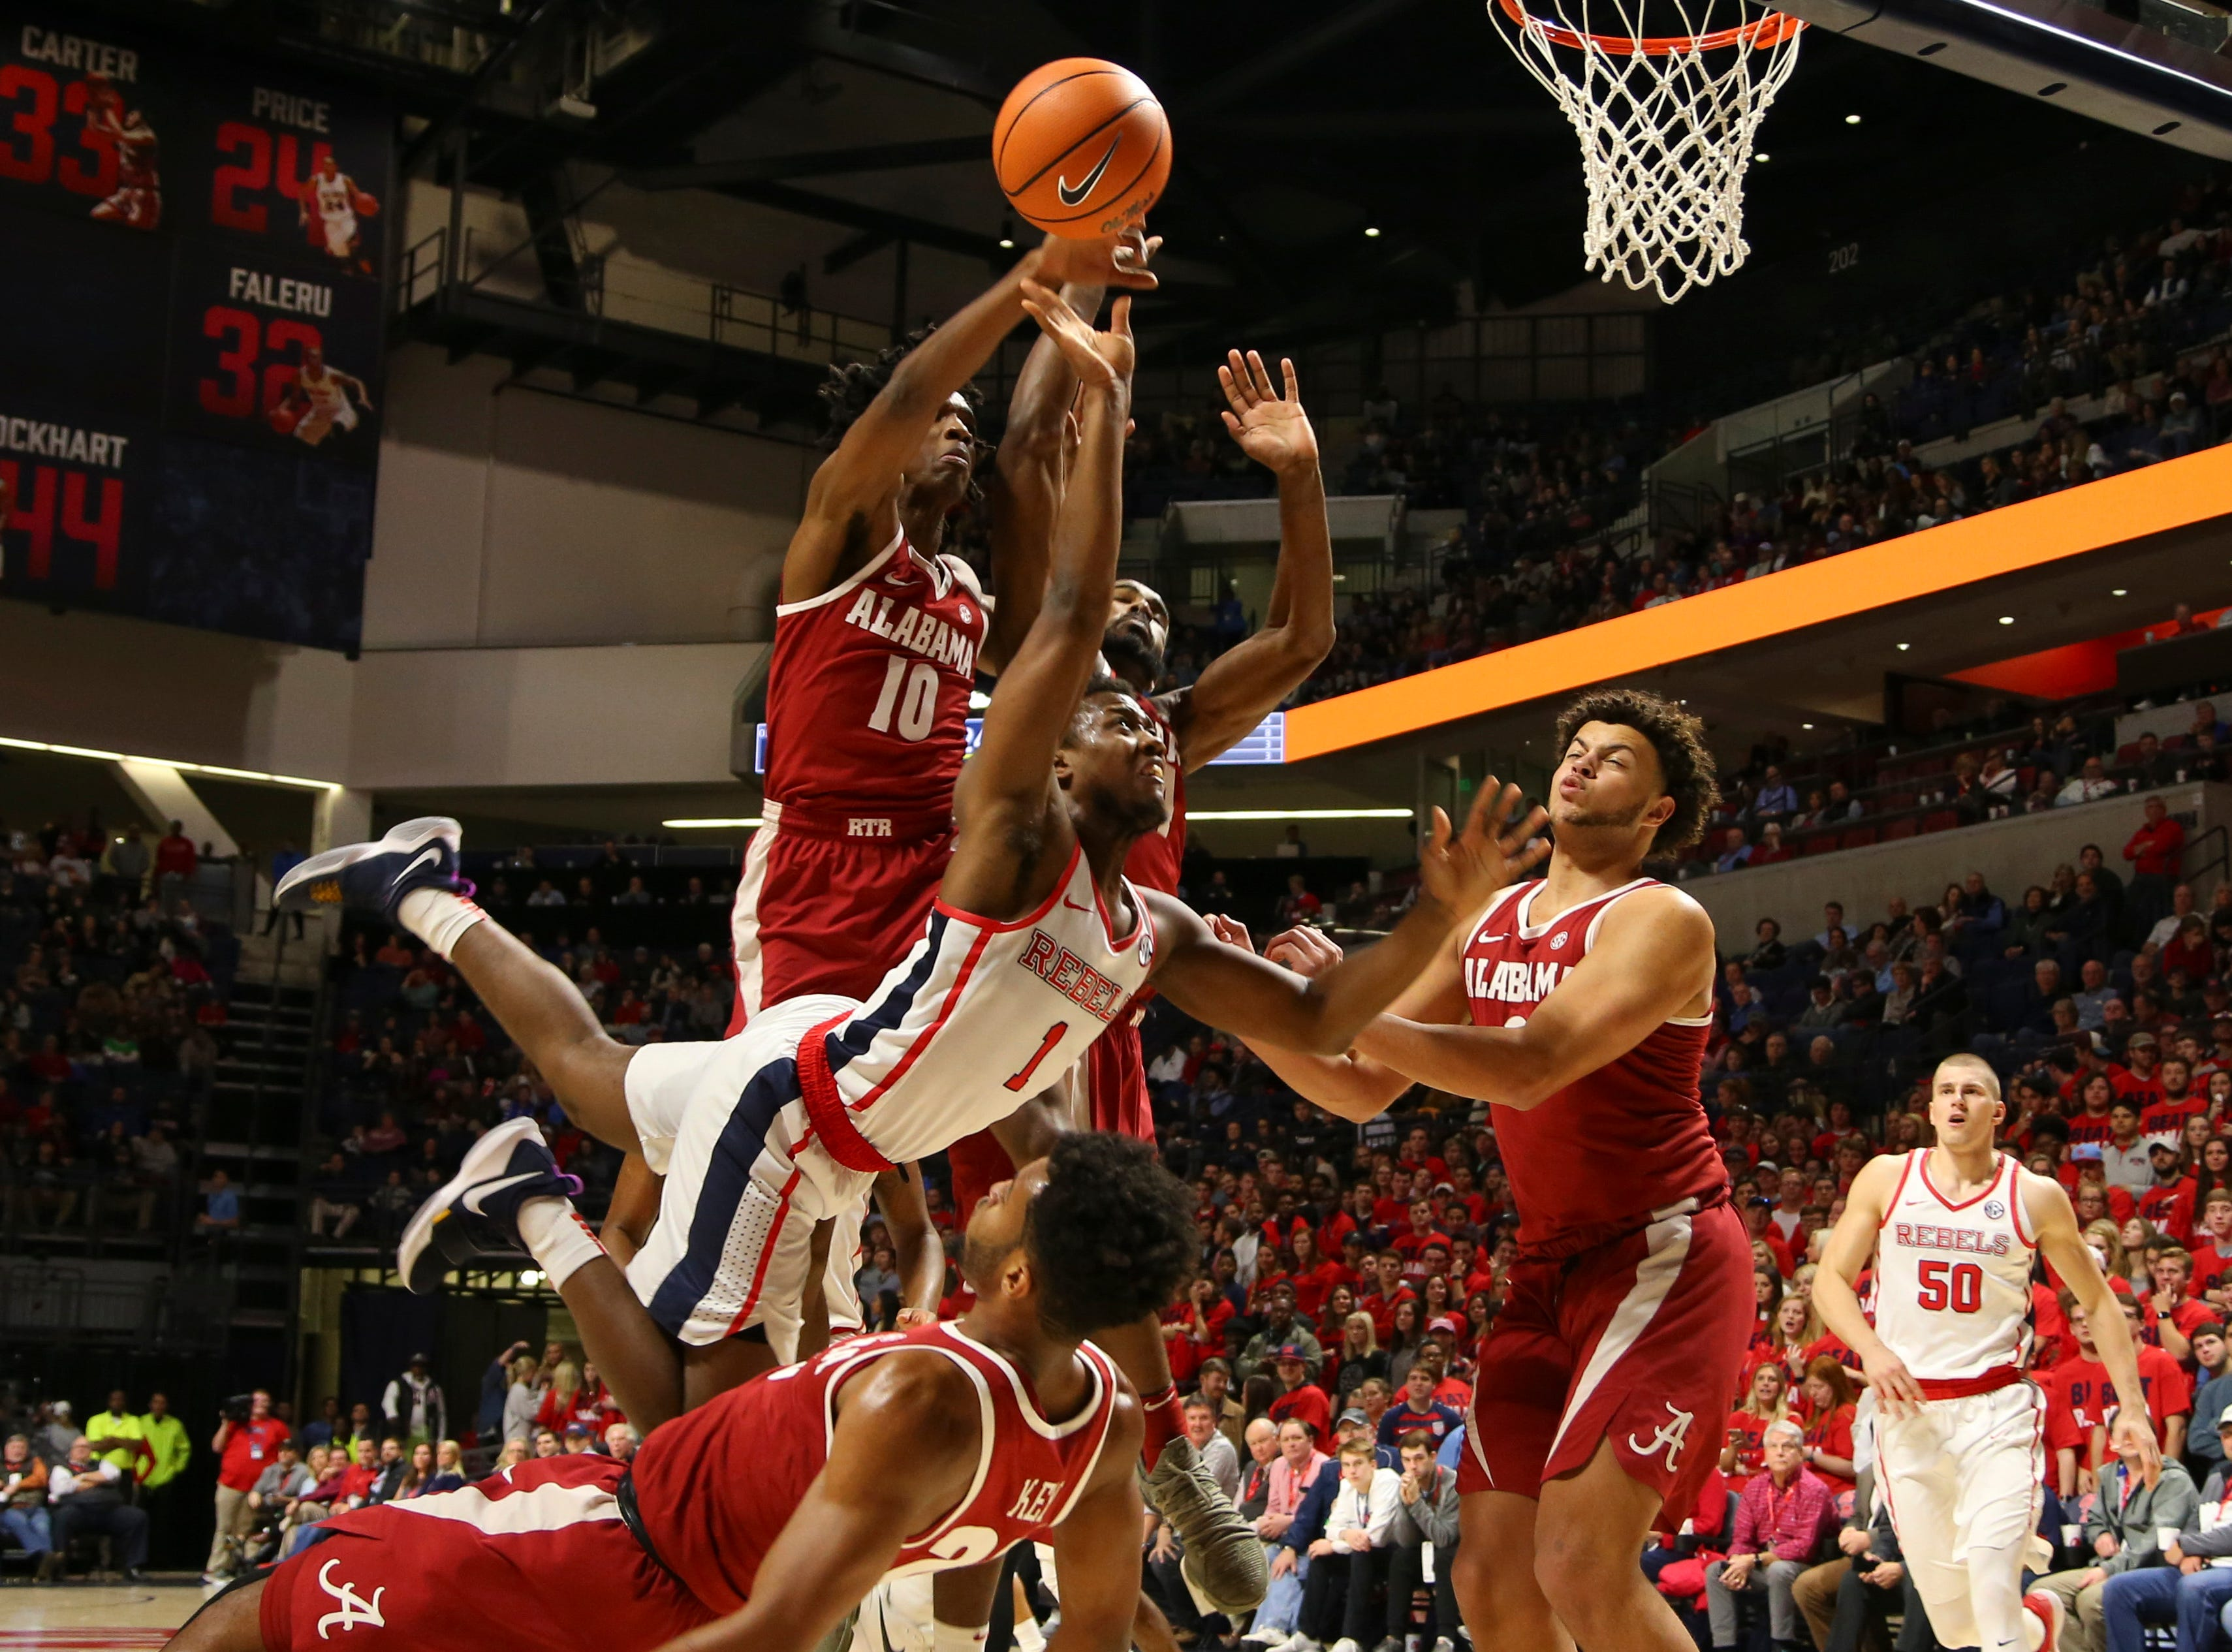 Jan. 23: Mississippi Rebels guard Deandre Burnett (1) shoots the ball against the Alabama Crimson Tide during the first half at The Pavilion at Ole Miss.